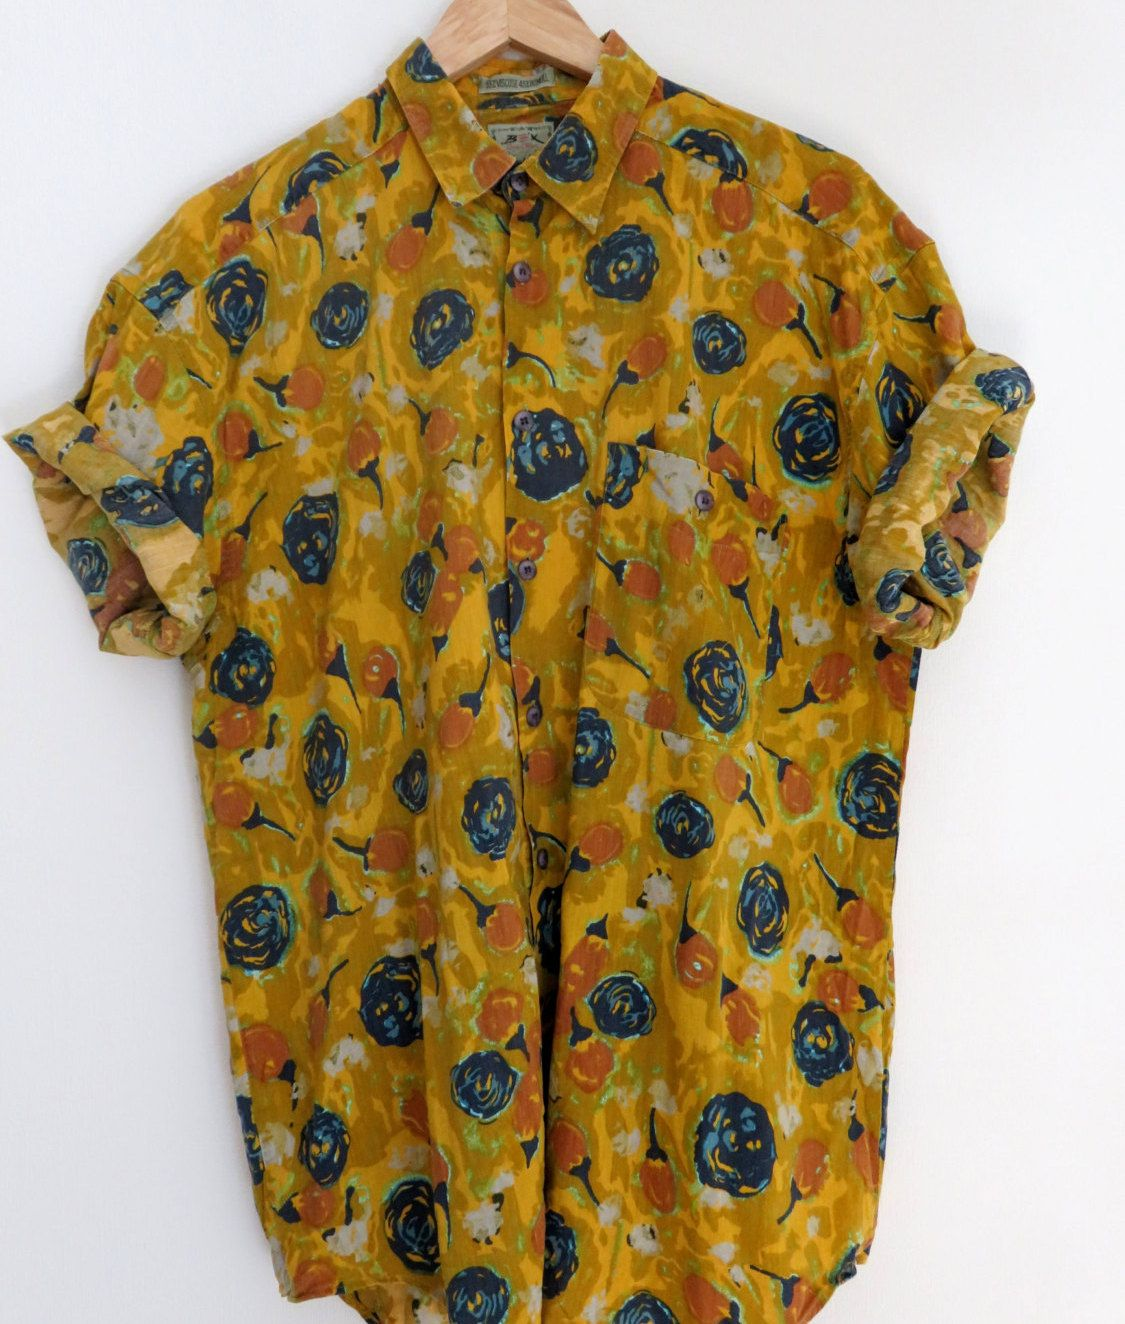 Vintage Men 39 S 80s 90s Short Sleeve Button Up Shirt Yellow